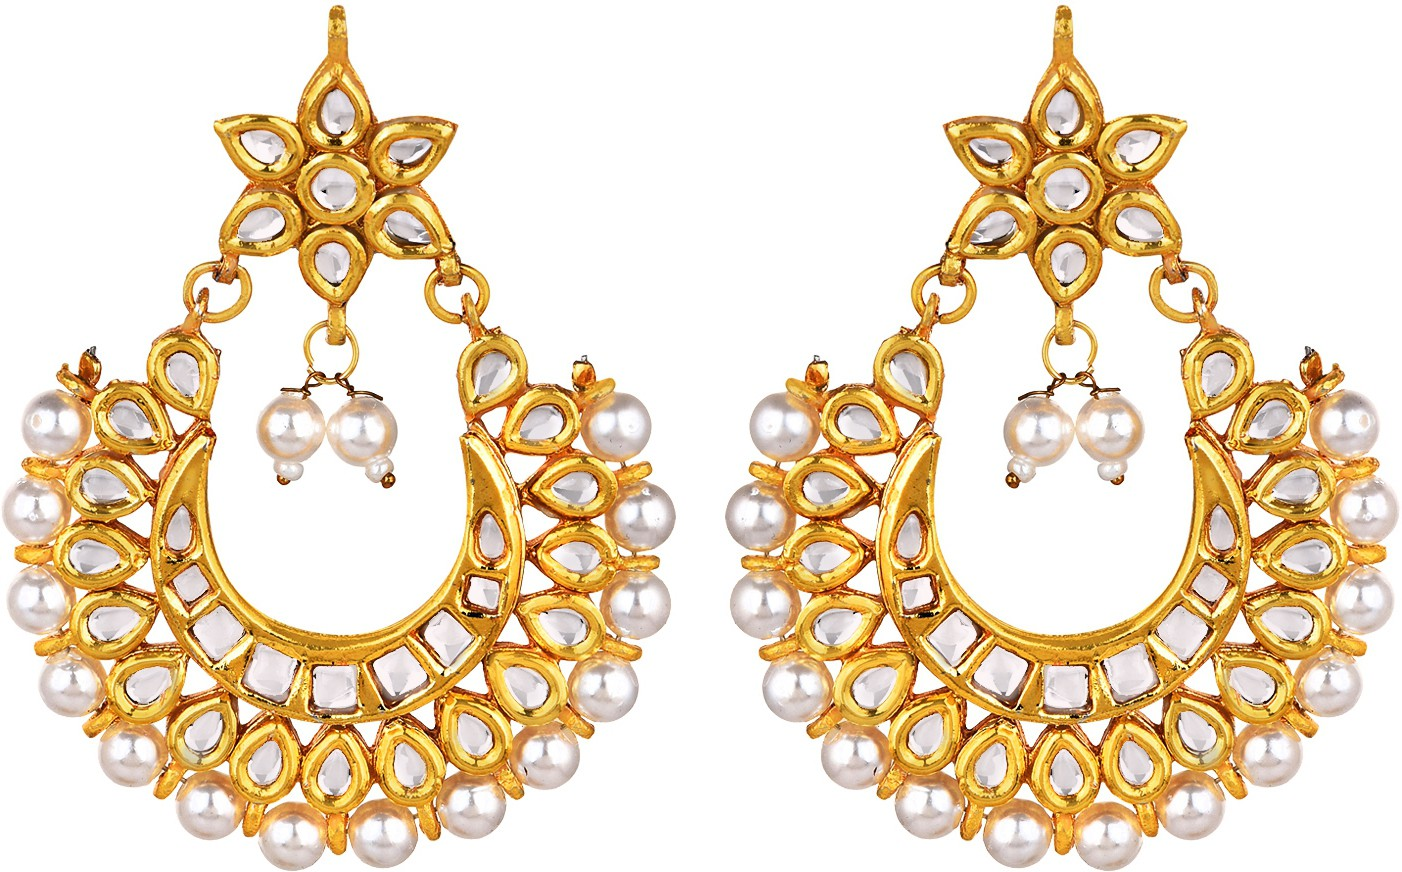 Deals - Delhi - Minimum 70% Off <br> Earrings, Pendants, Bracelets.<br> Category - jewellery<br> Business - Flipkart.com